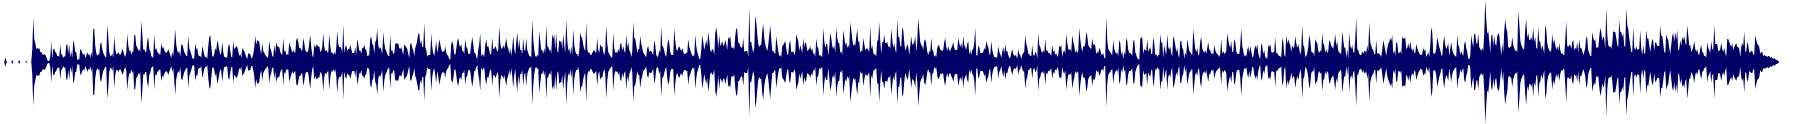 waveform of track #83566